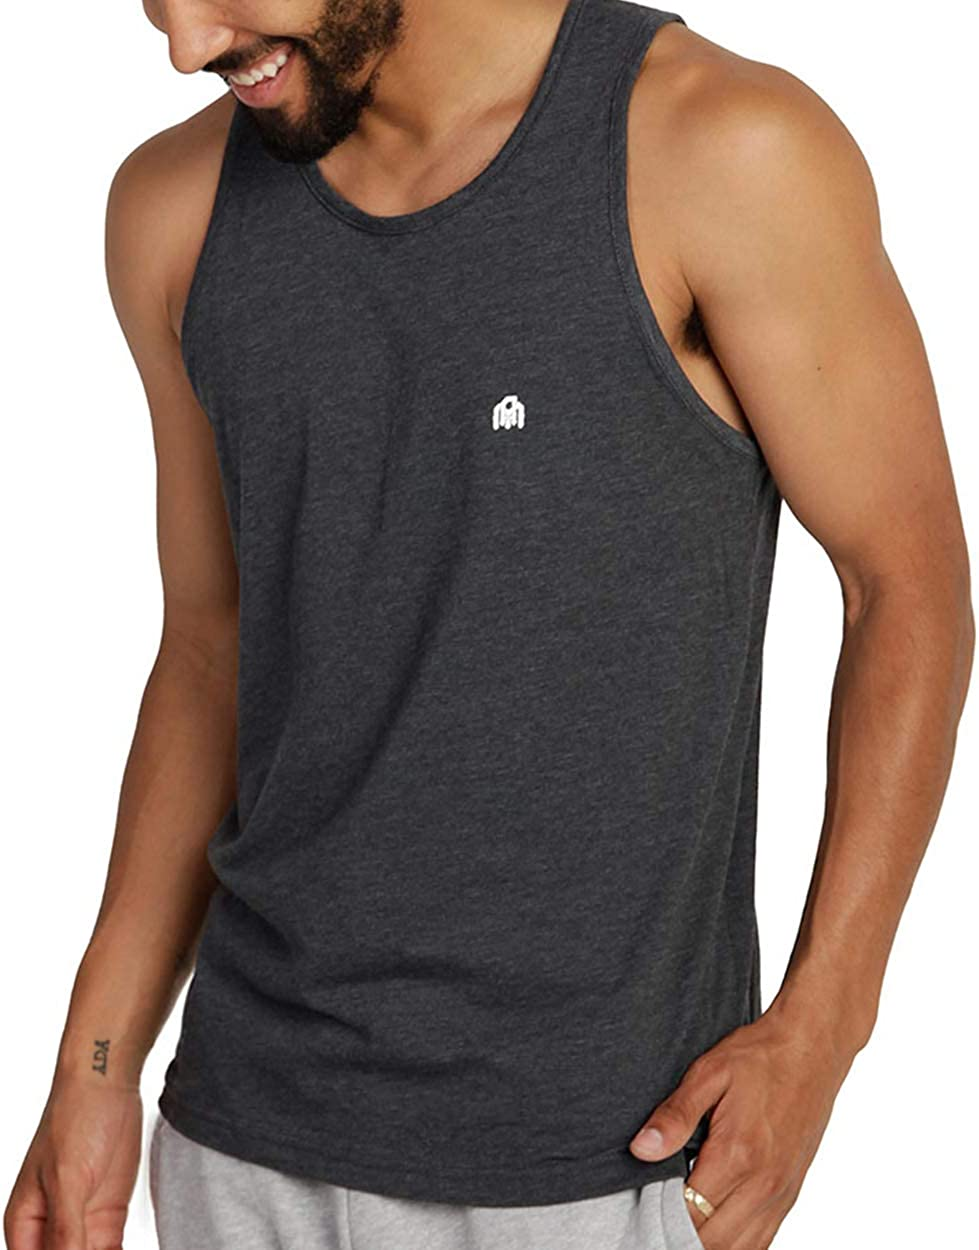 INTO Bargain THE AM Men's Wholesale Basic Tank Muscl - Sleeveless Soft Tops Fitted